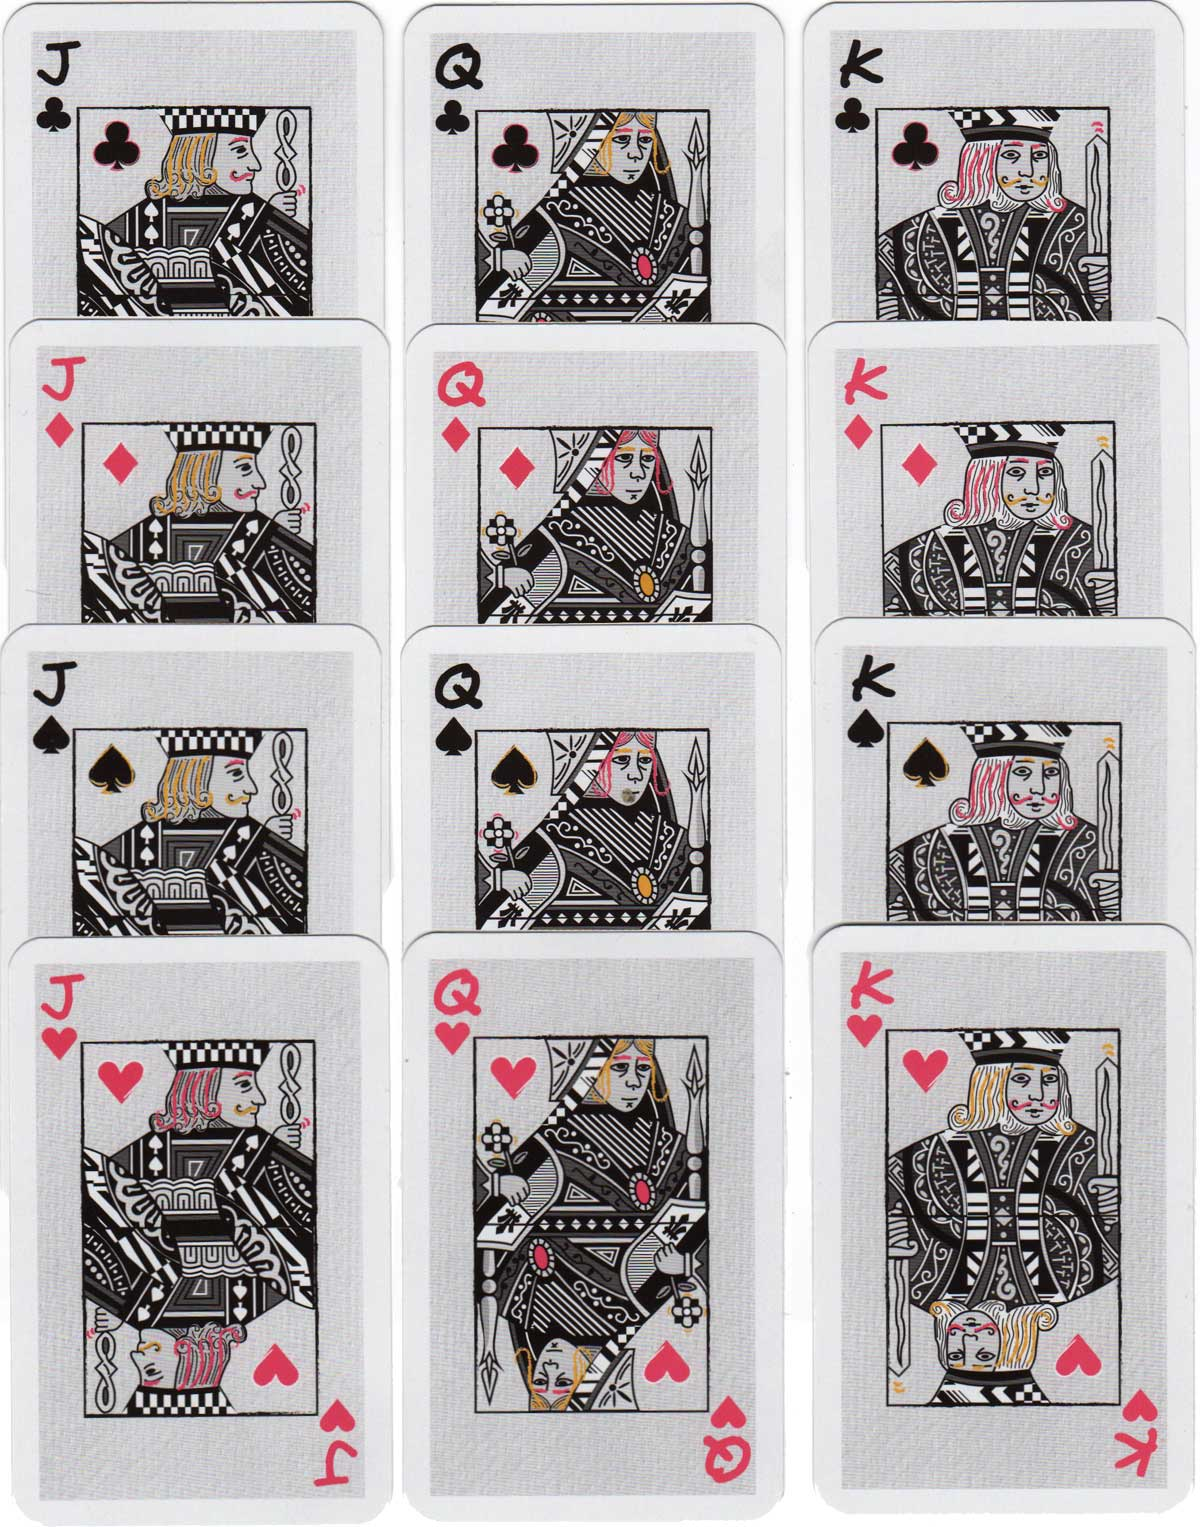 Giffgaff mobile network playing cards, 2017